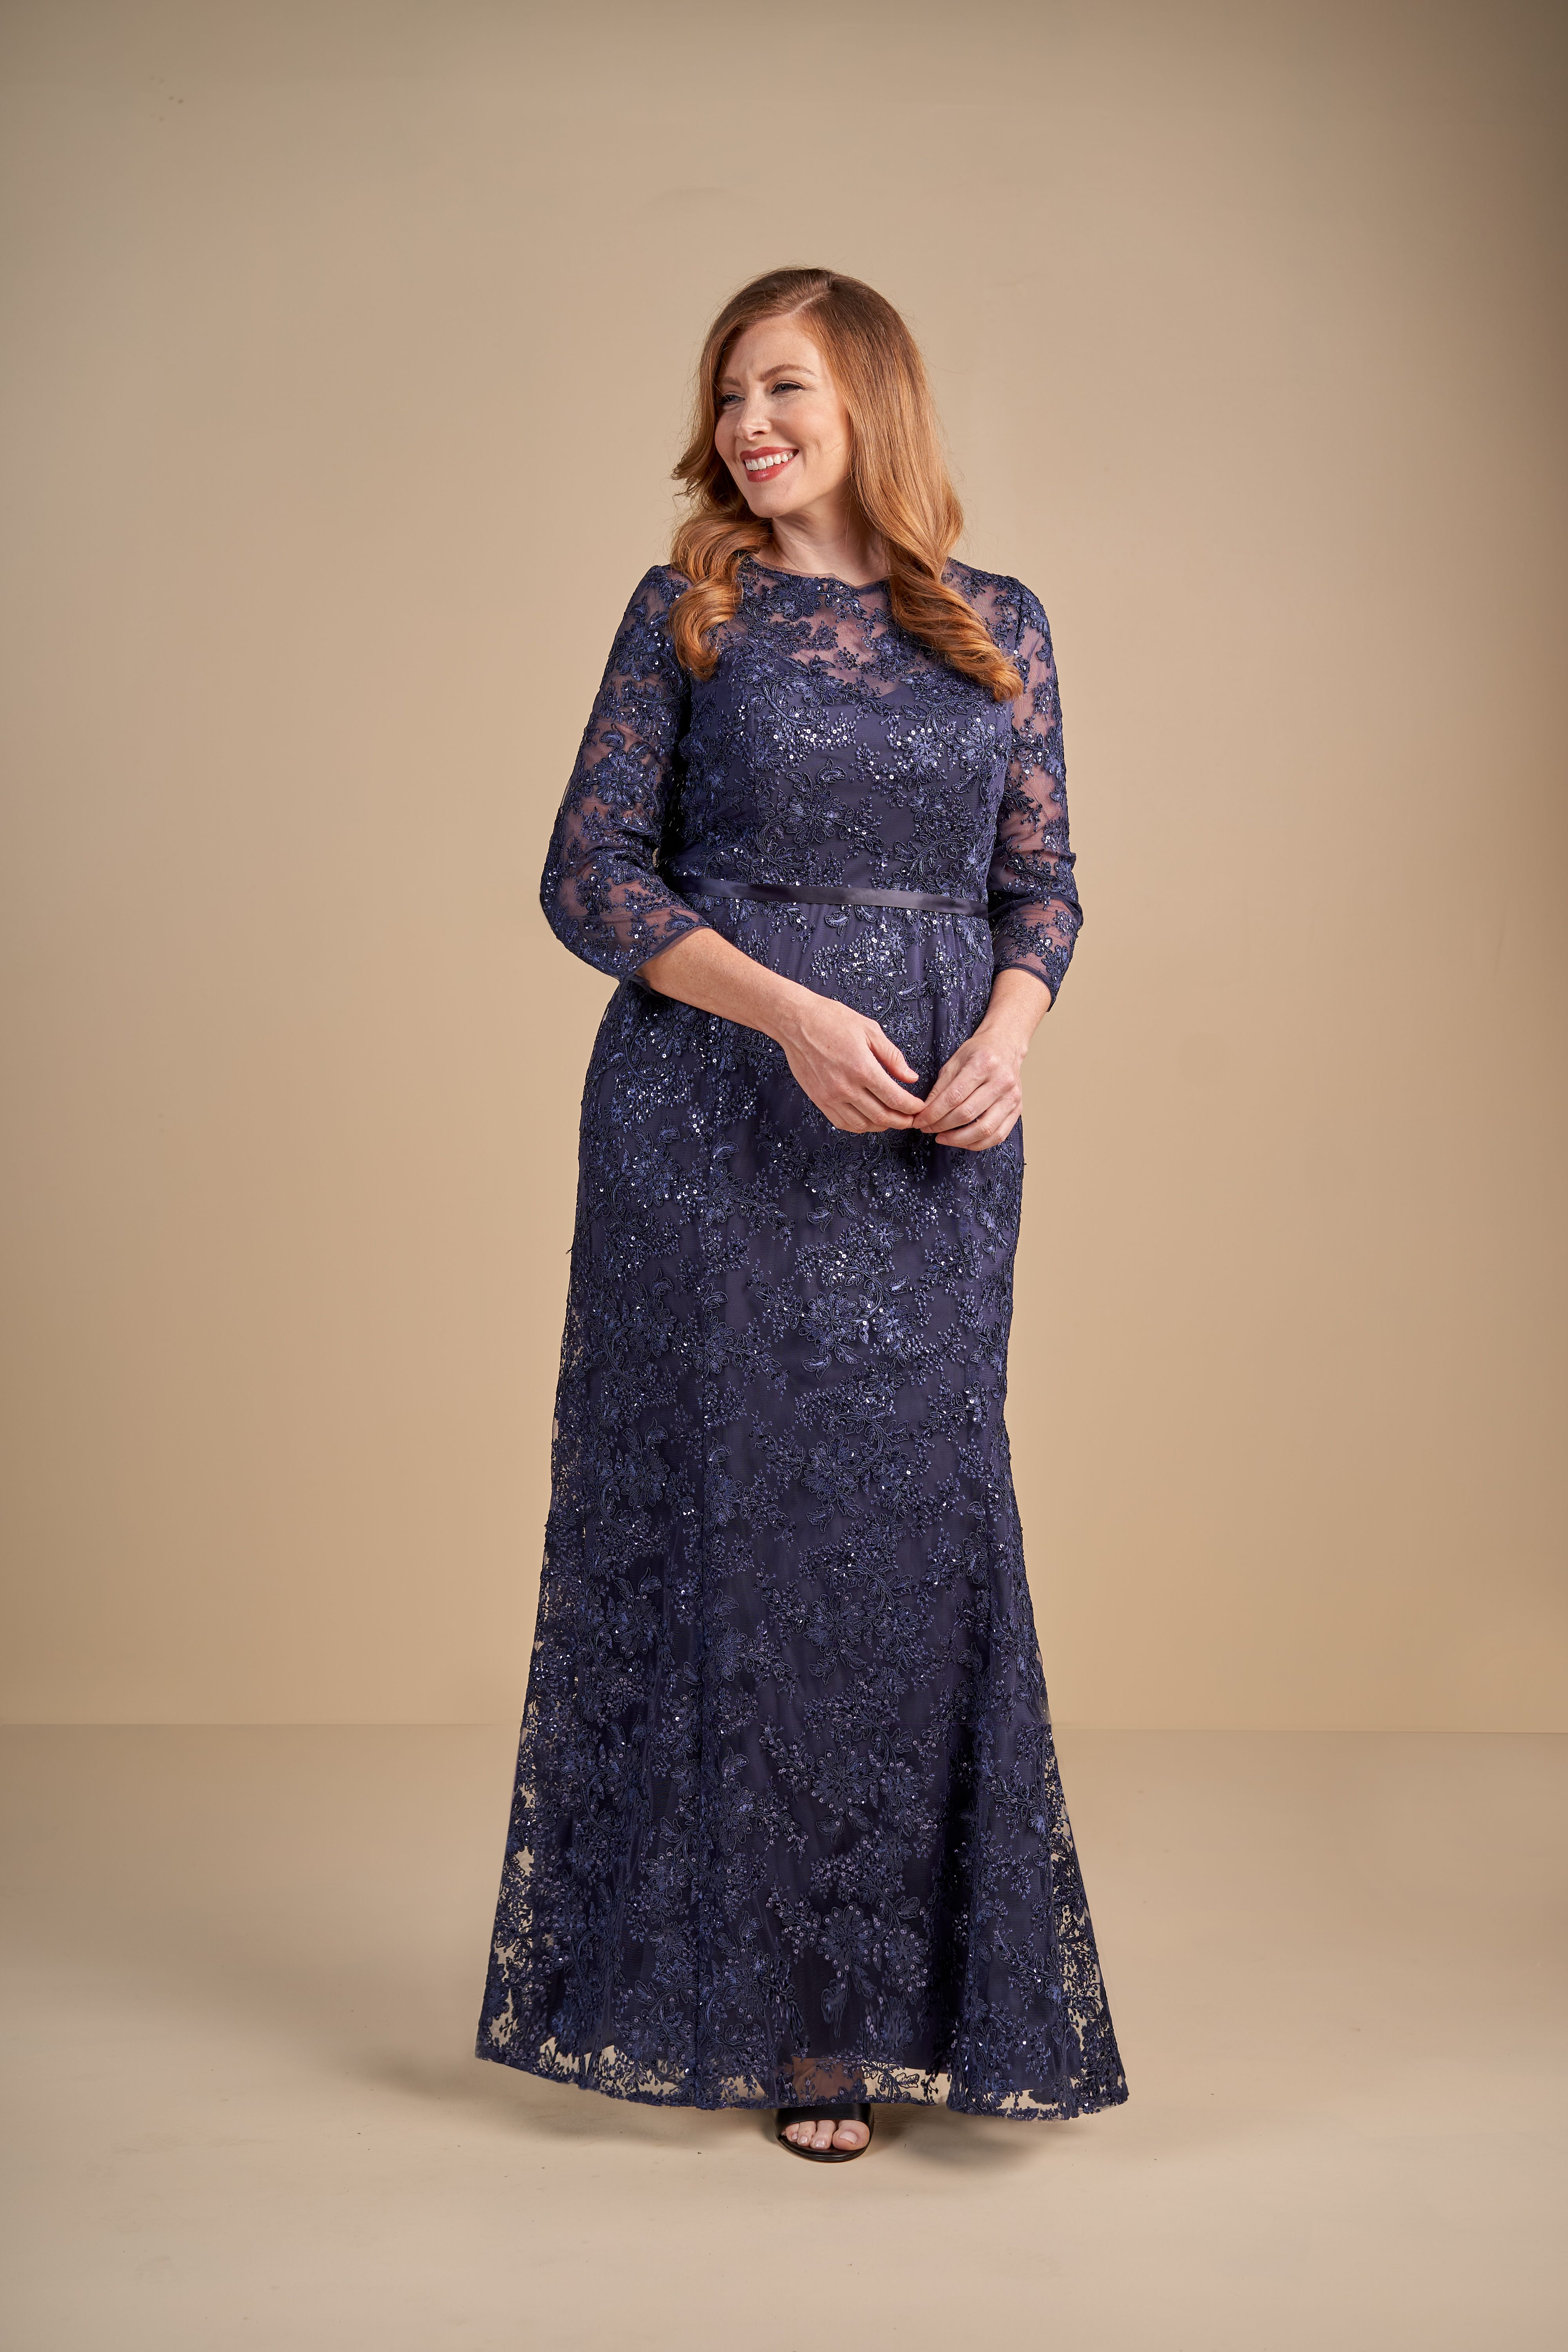 Plus Size Jade Gorgeous Mother Of The Bride Dress Made With Chelsea Lace With Stretch Lining Beaut Mother Of The Bride Gown Mob Dresses Womens Shift Dresses [ 6000 x 4000 Pixel ]